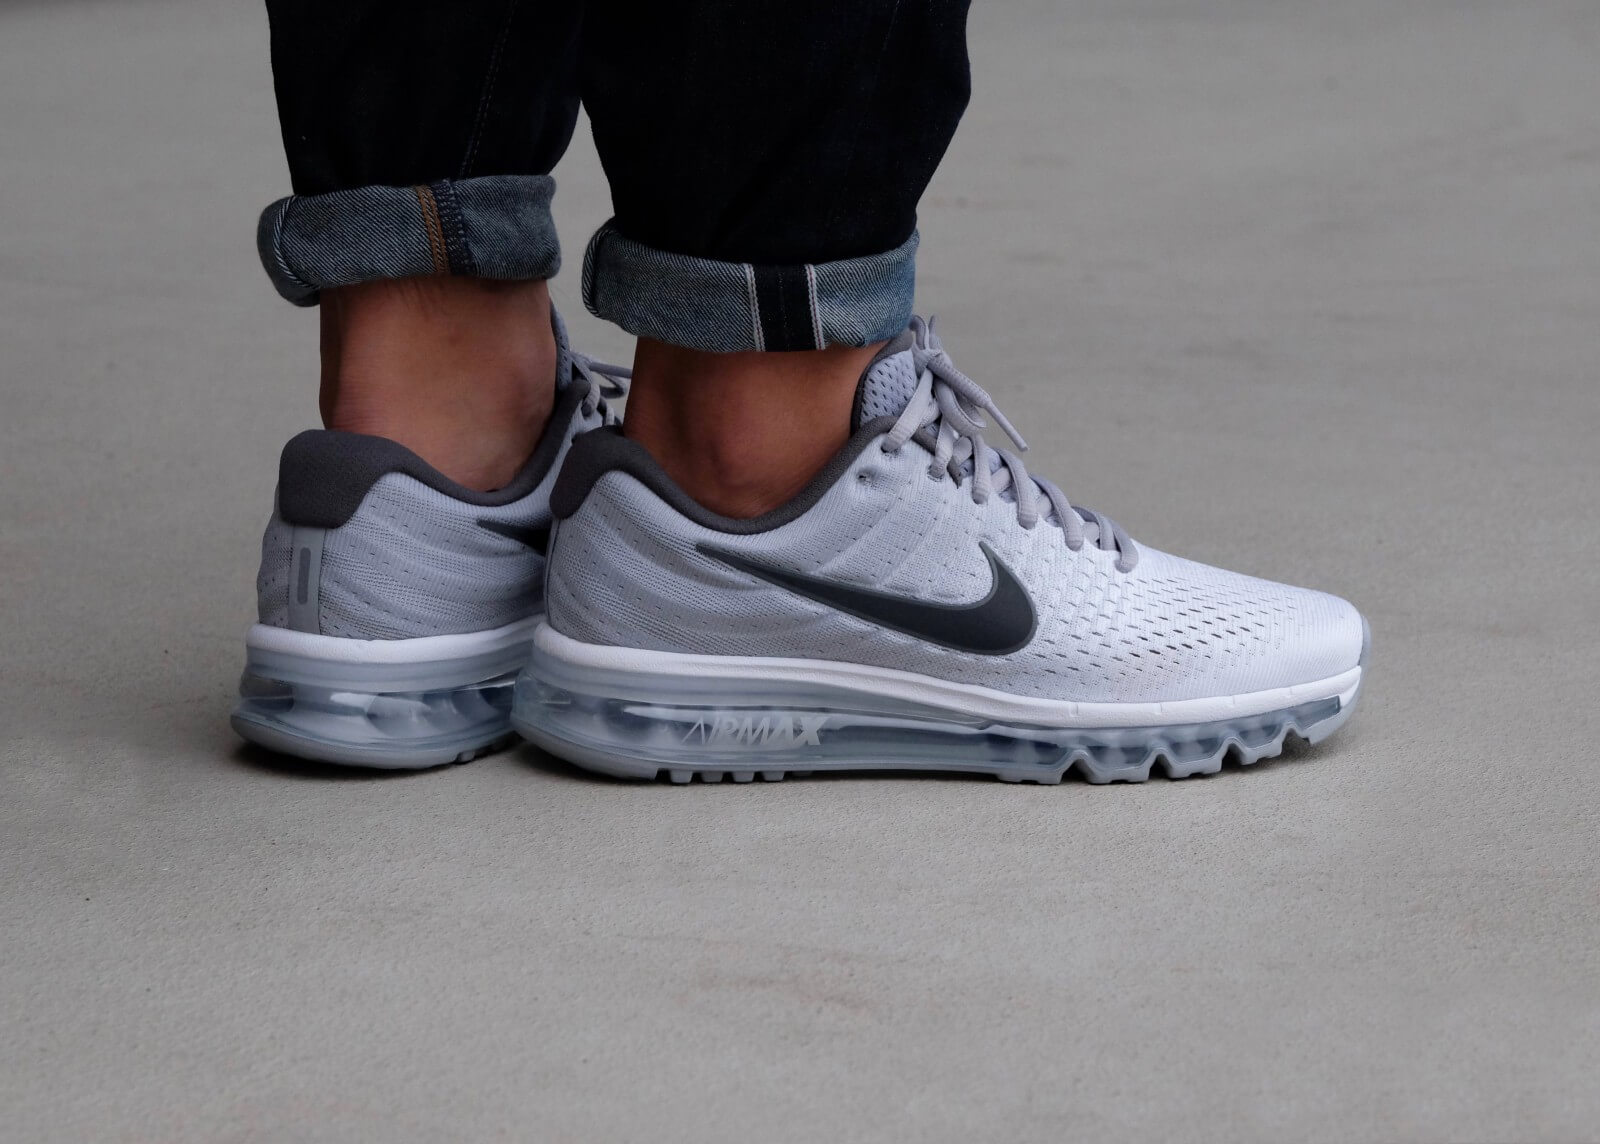 Nike Air Max 2017 WhiteDark Grey Wolf Grey 849559 101